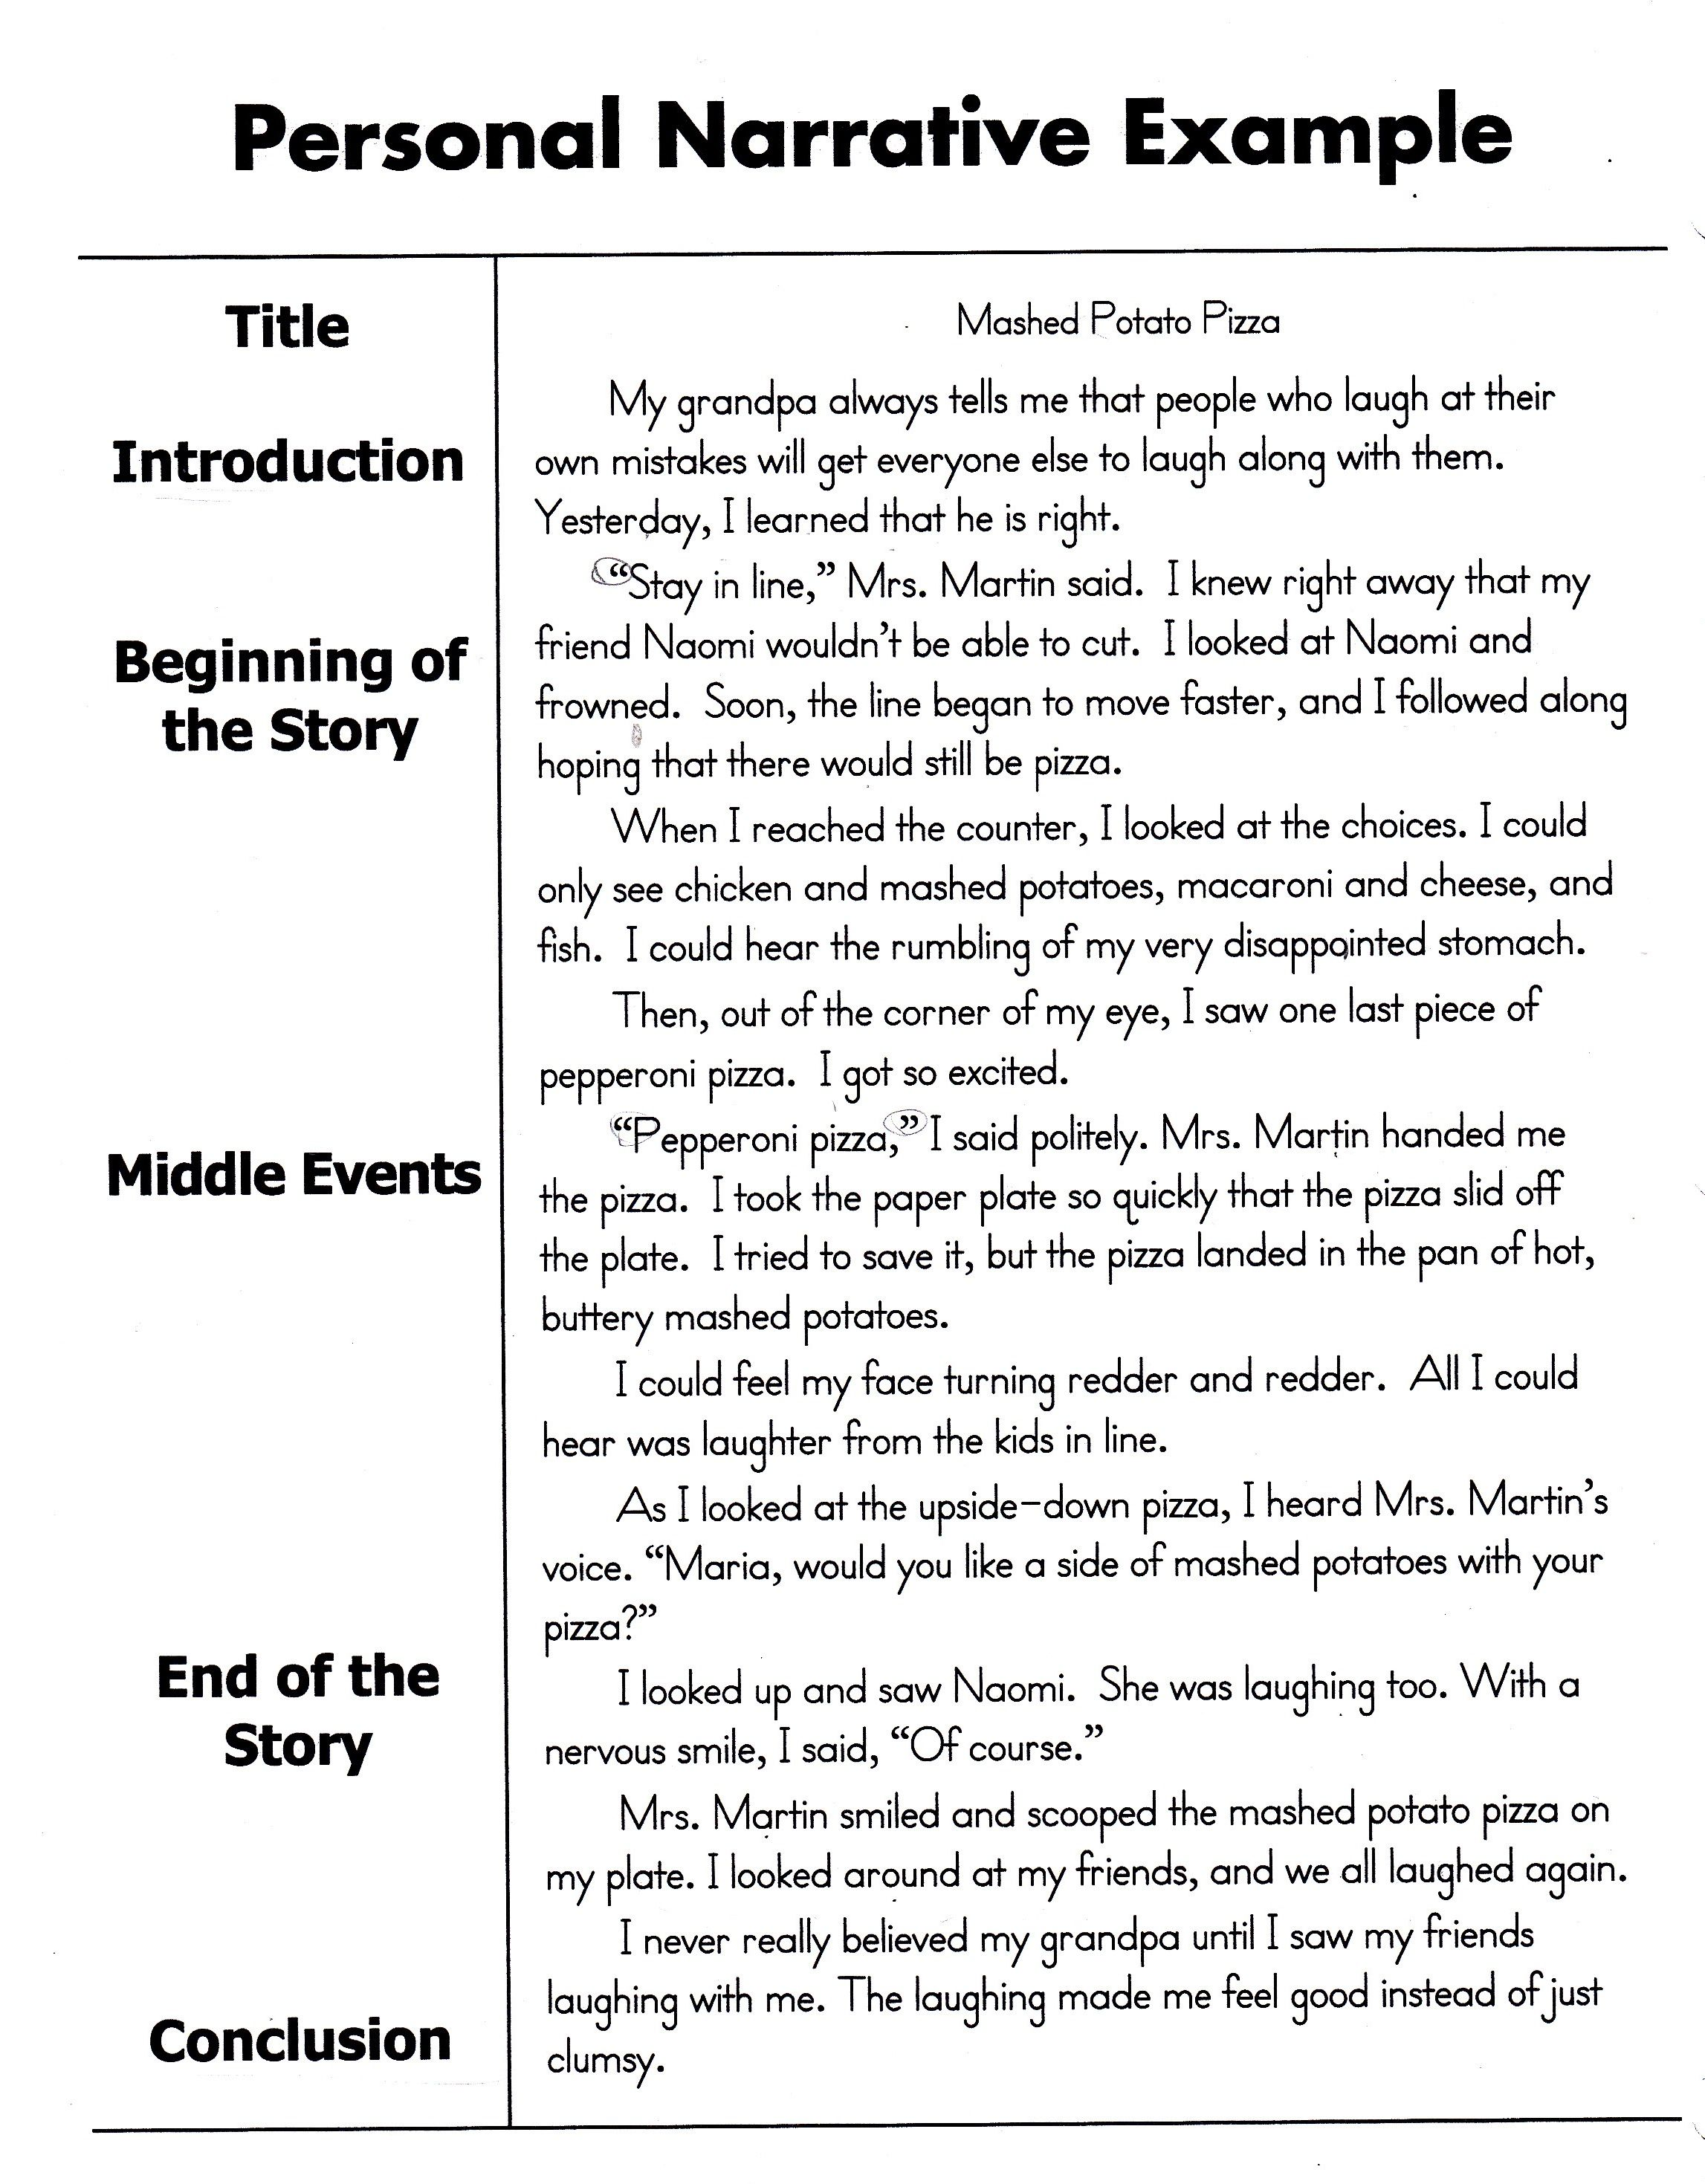 how to write a personal narrative essay for 4th 5th grade oc narrative essay formal letter - Narrative Example Essay